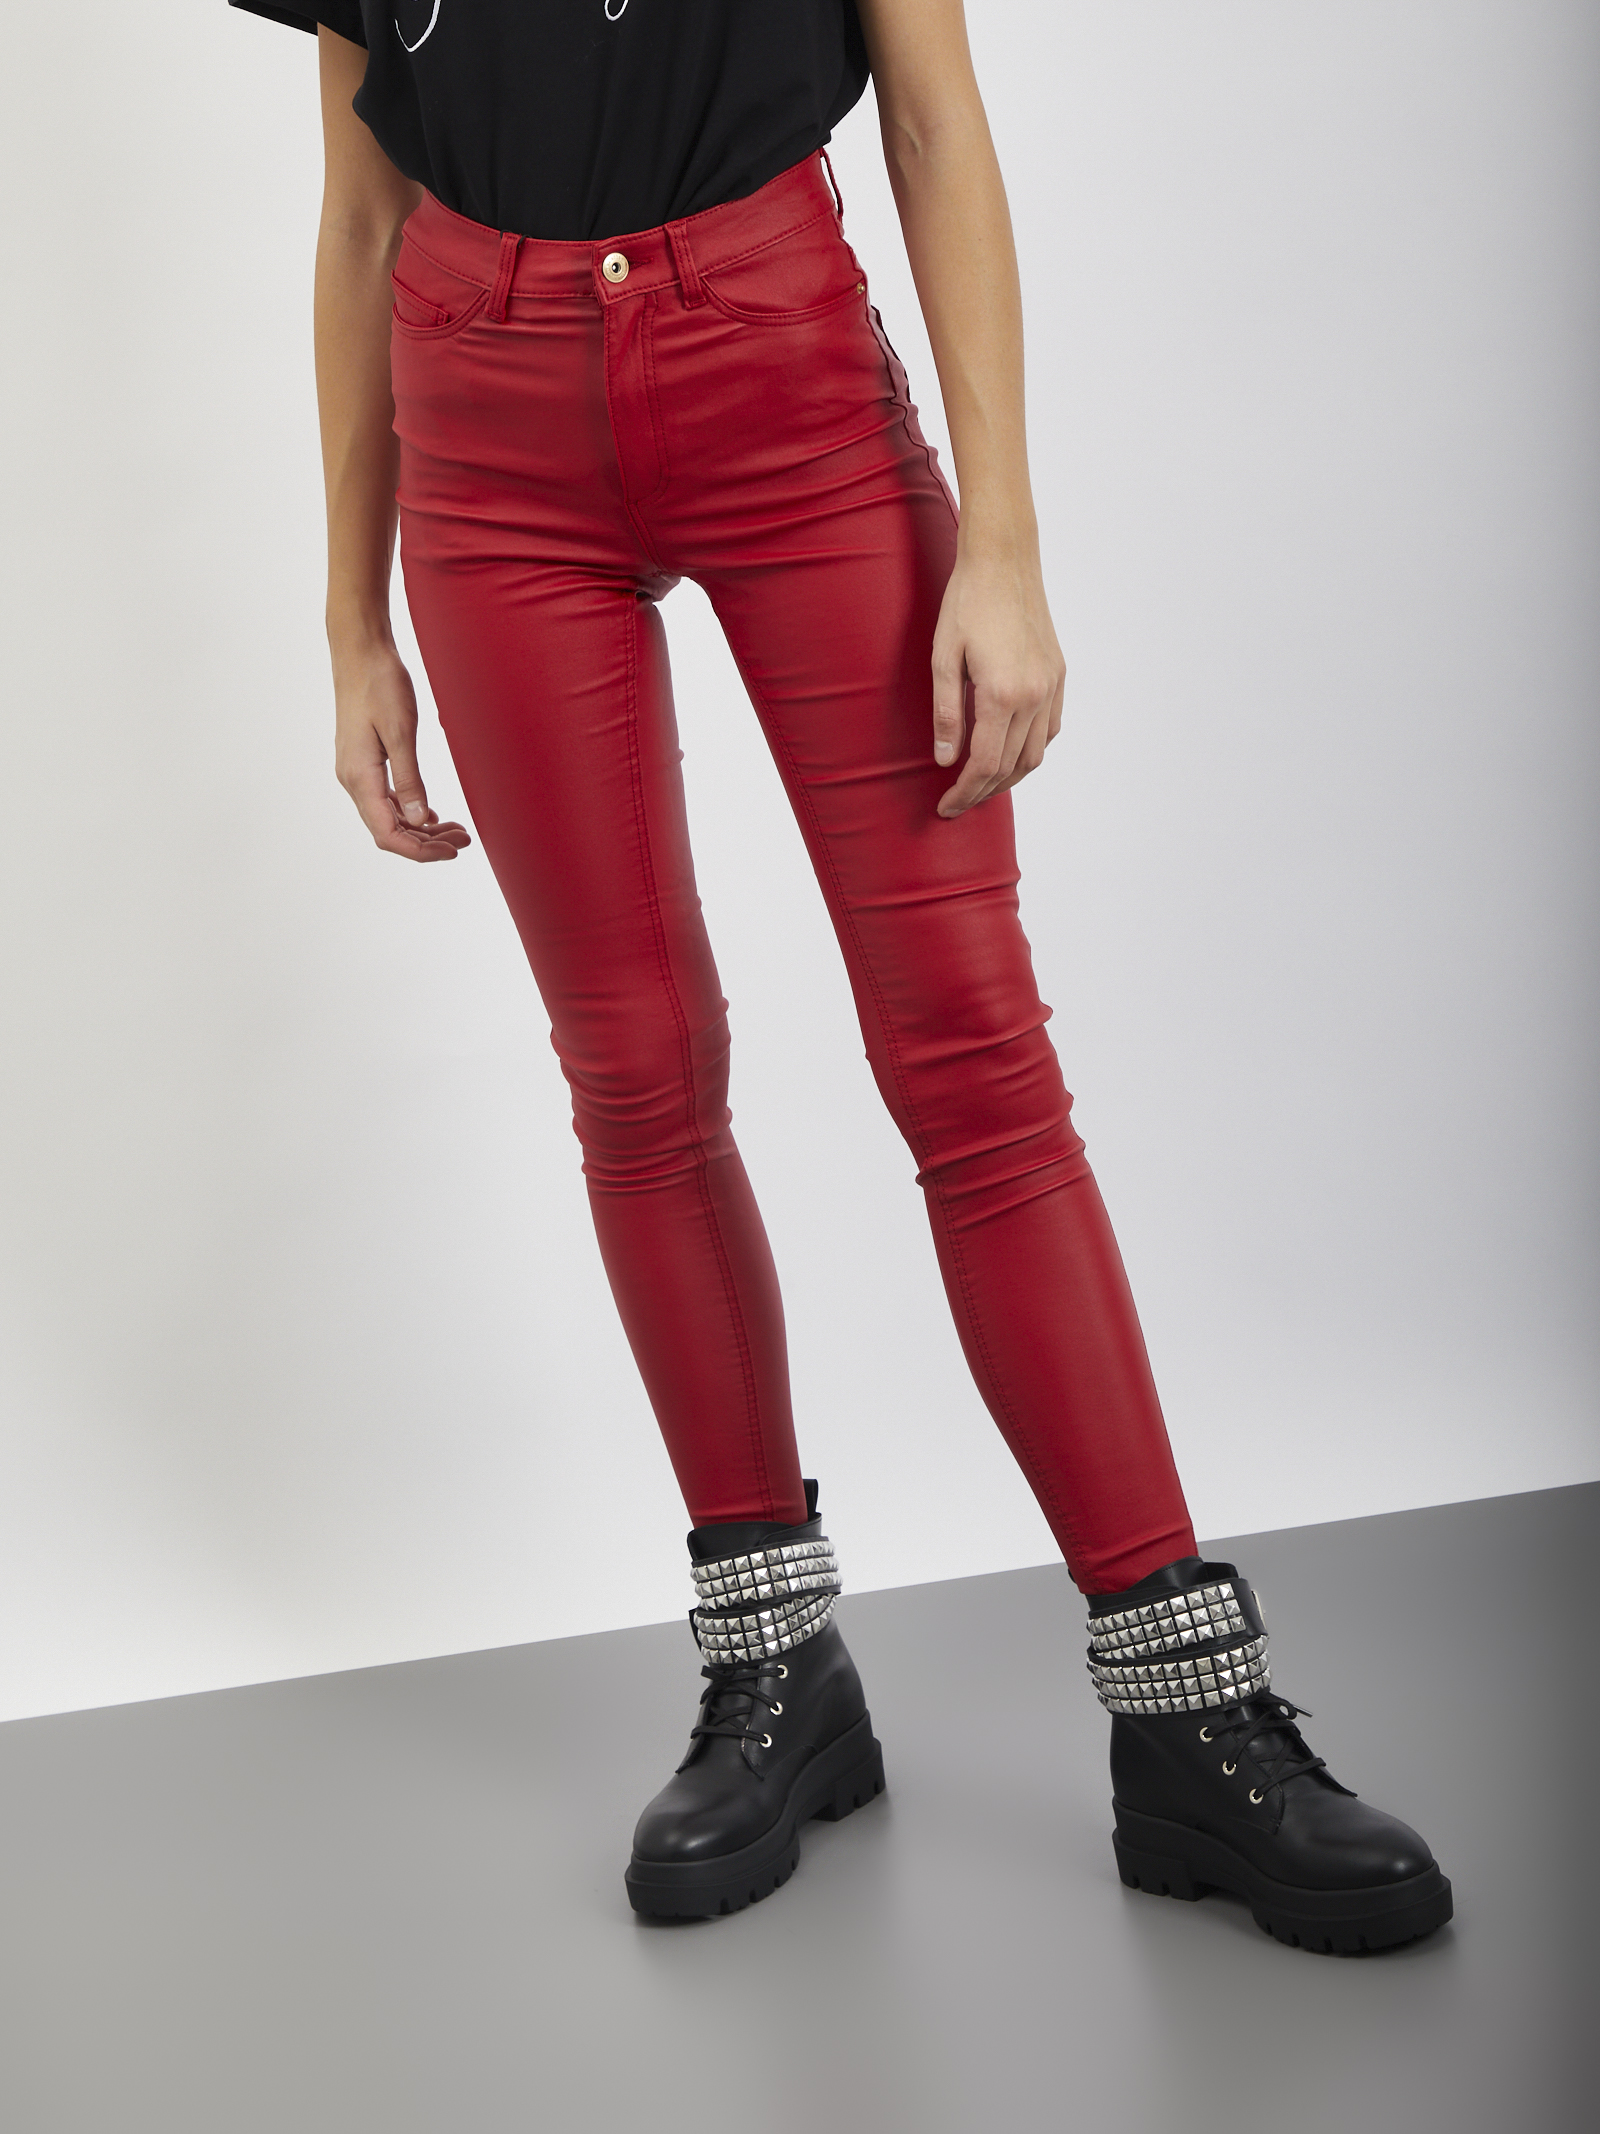 pants NOISY MAY | Trousers | 27013113ROSSO